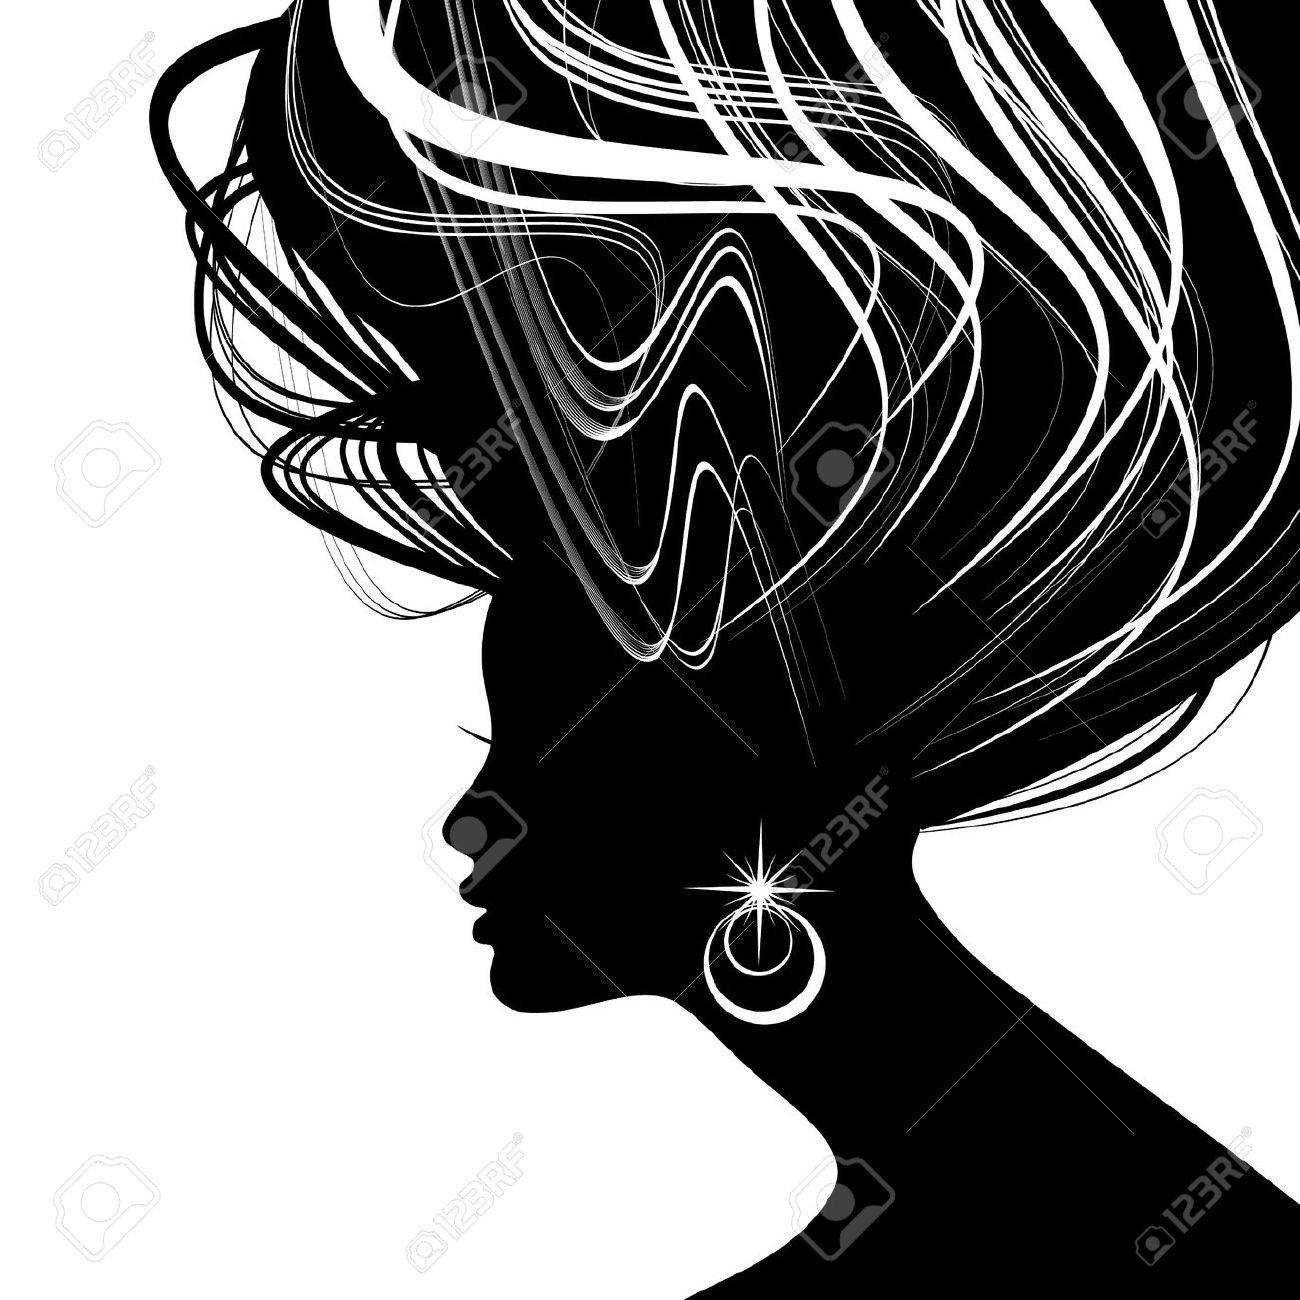 Woman face silhouette with wavy hair Stock Vector - 15906104